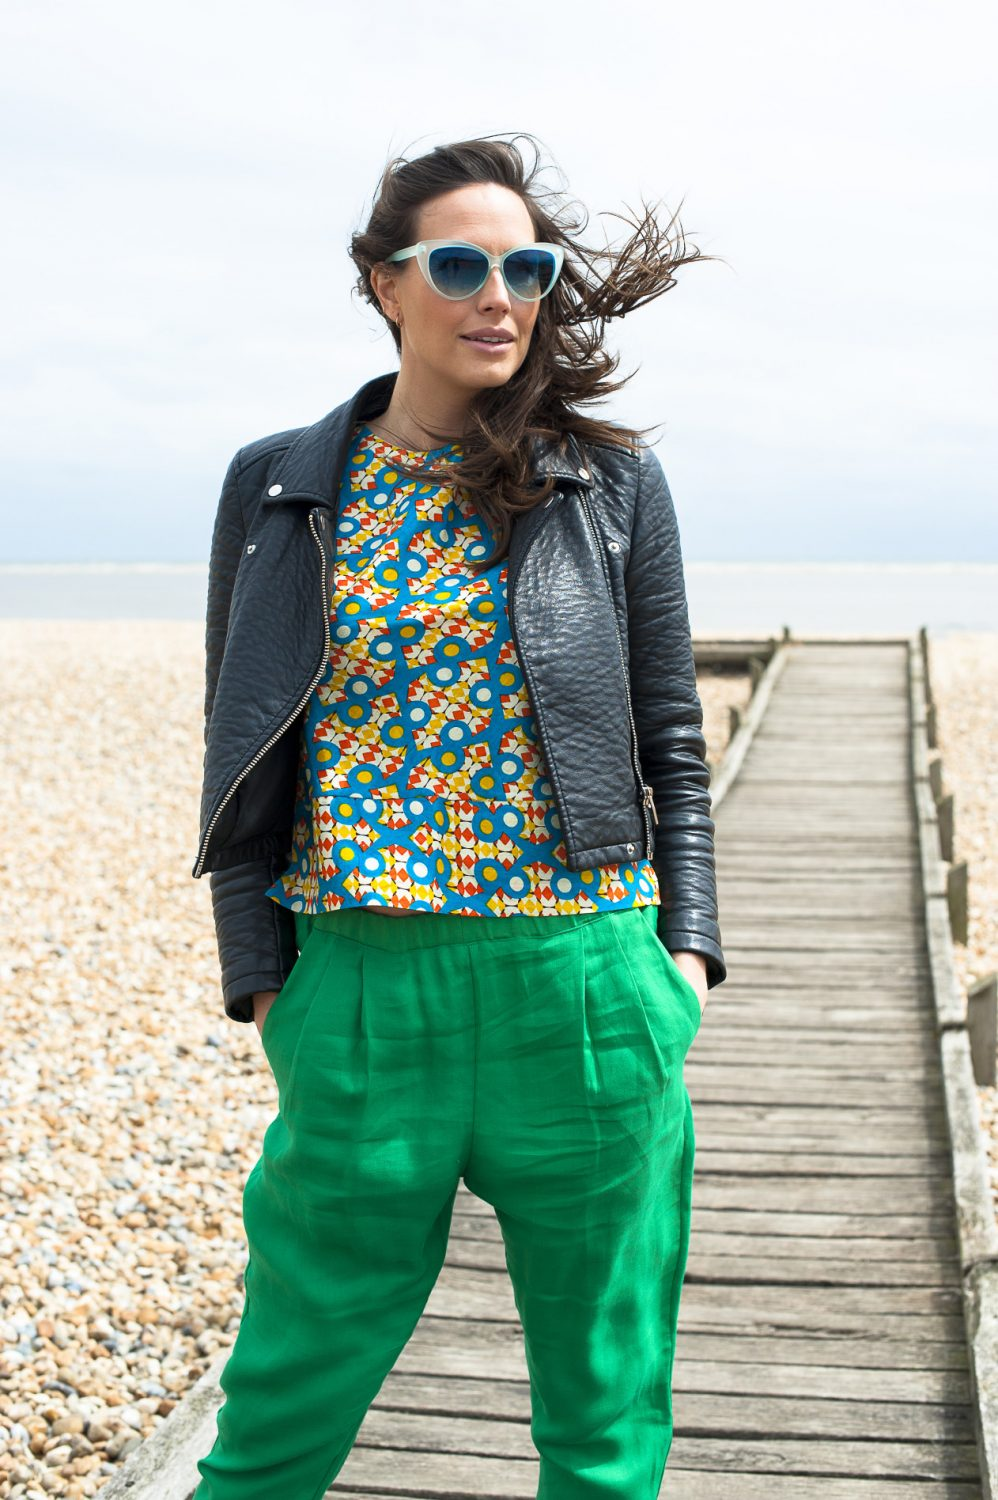 Emin & Paul green trousers, £95, Mayamiko print top, £45, Reyflector sunglasses, £10, Who's Wearing What Boutique, St Leonards whoswearingwhat-boutique.co.uk